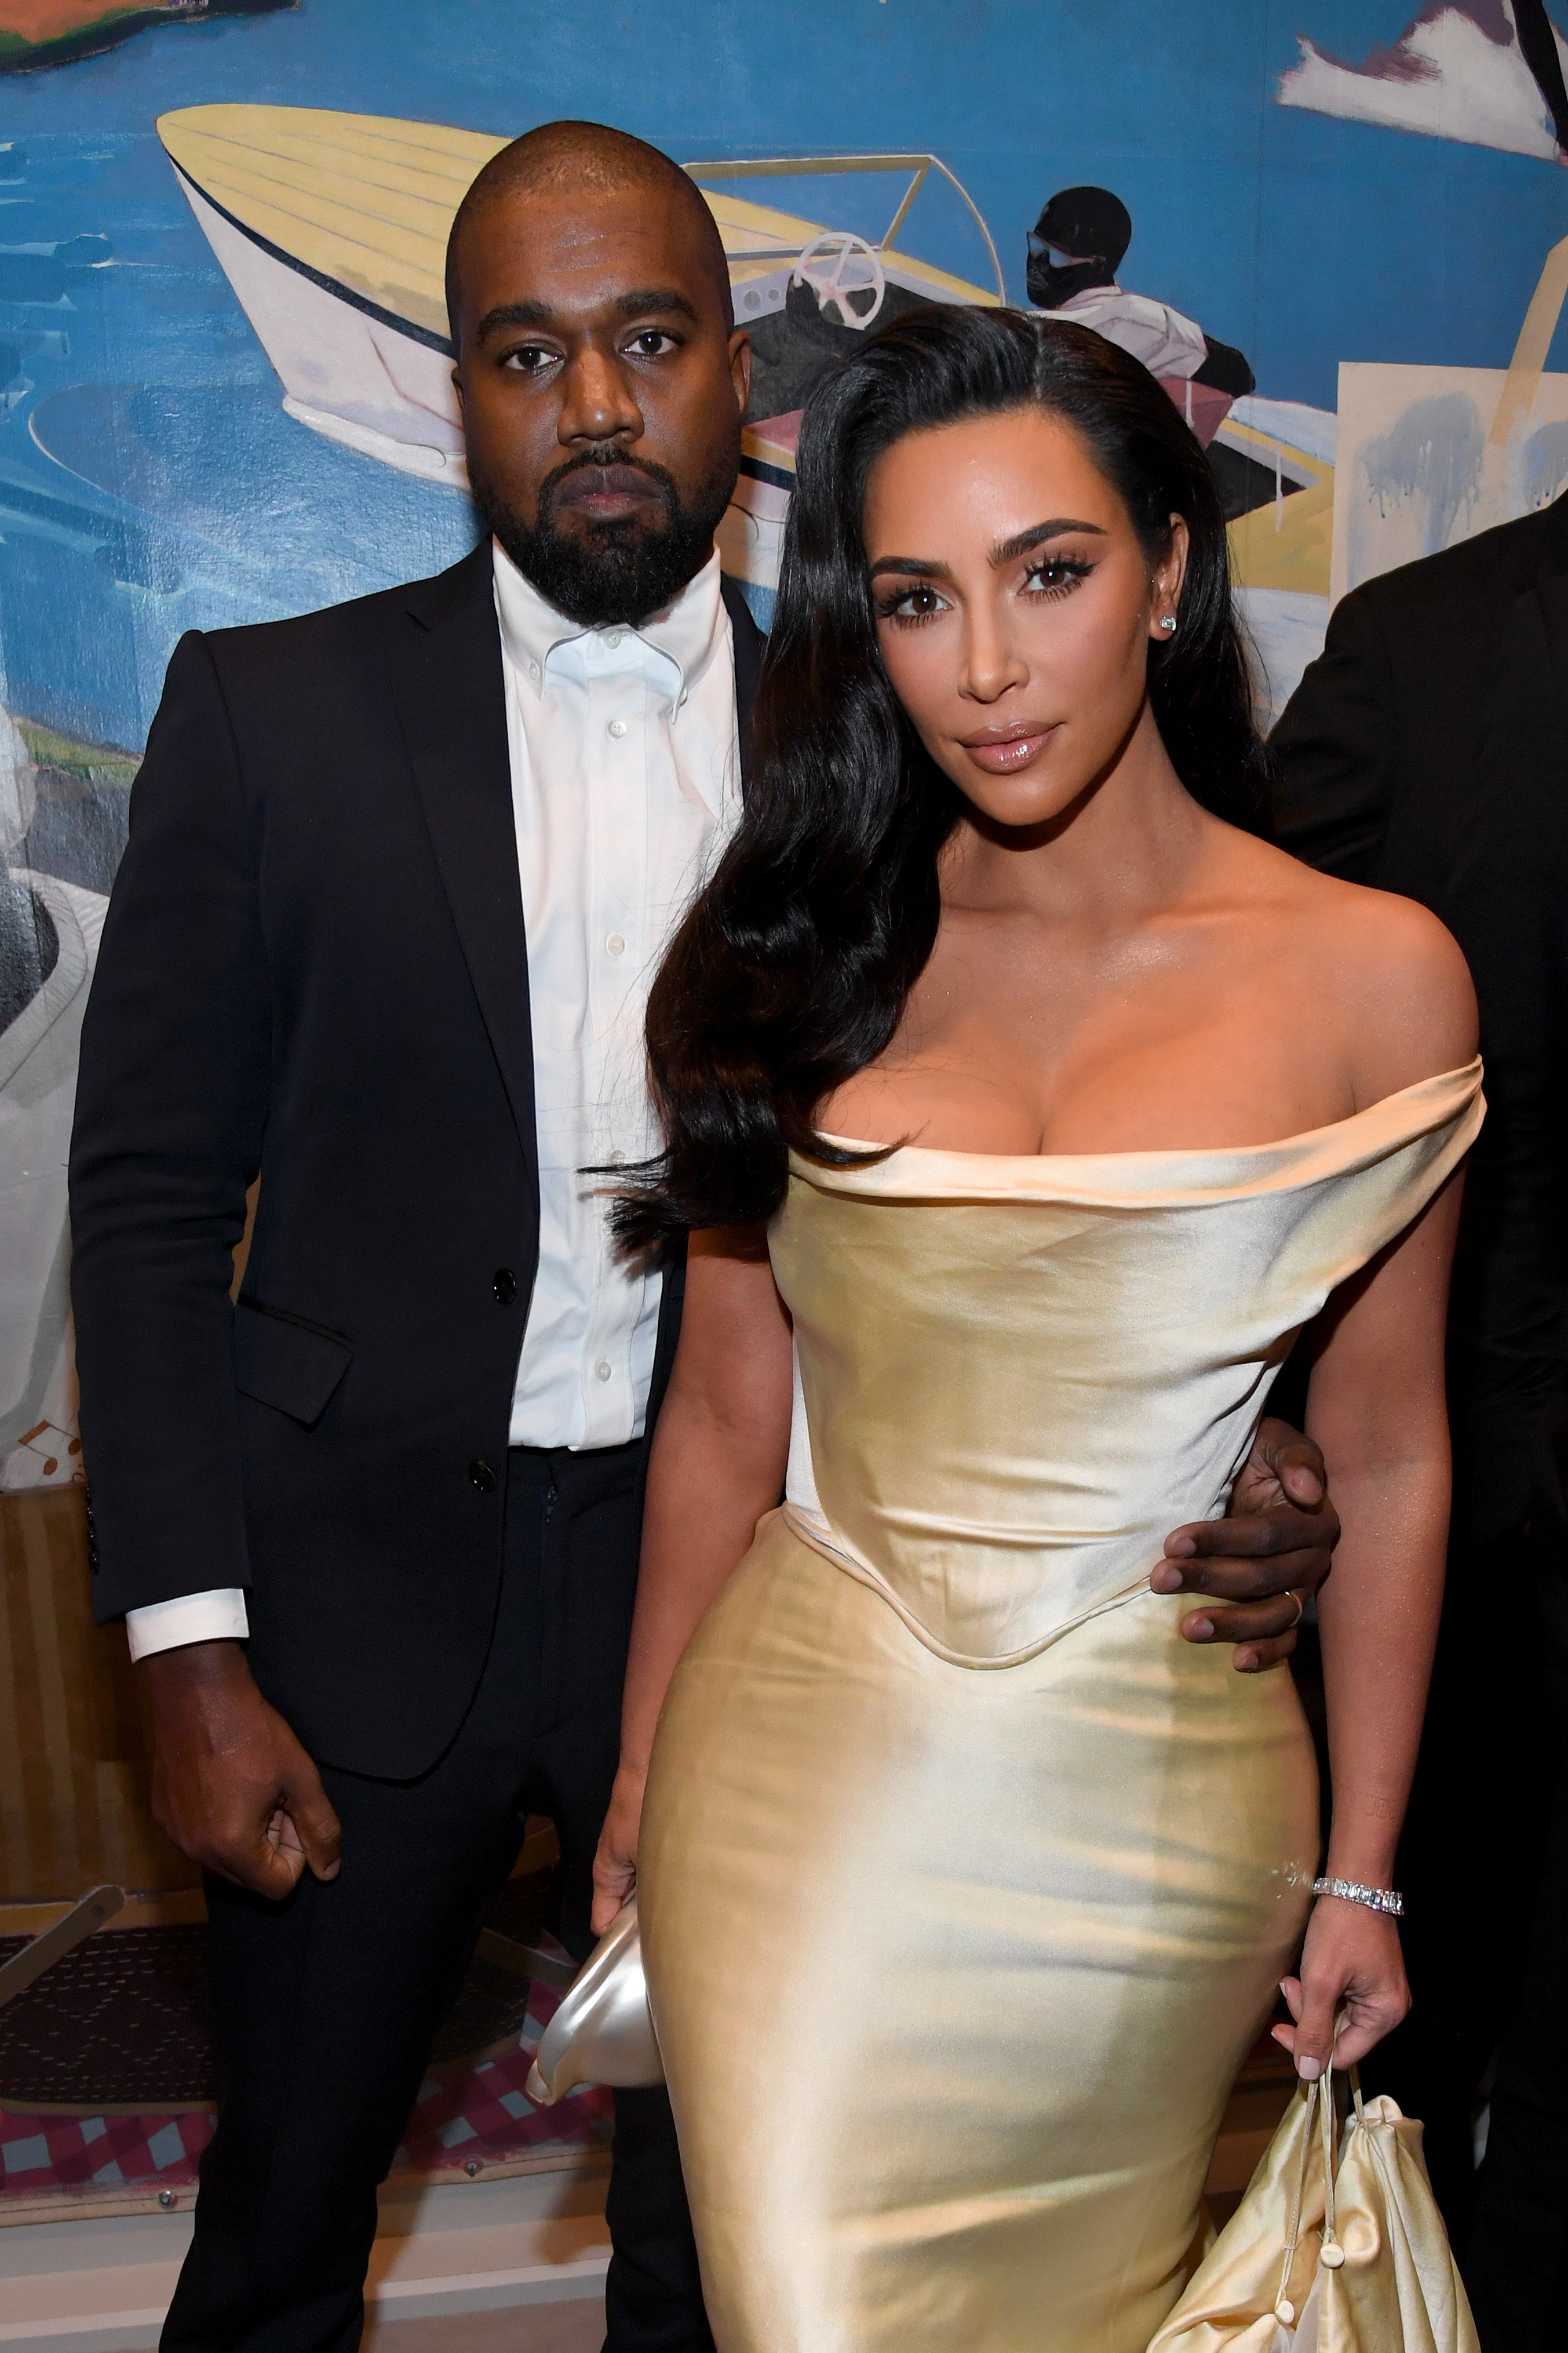 Kim and Kanye at Sean Combs' 50th birthday party in 2019